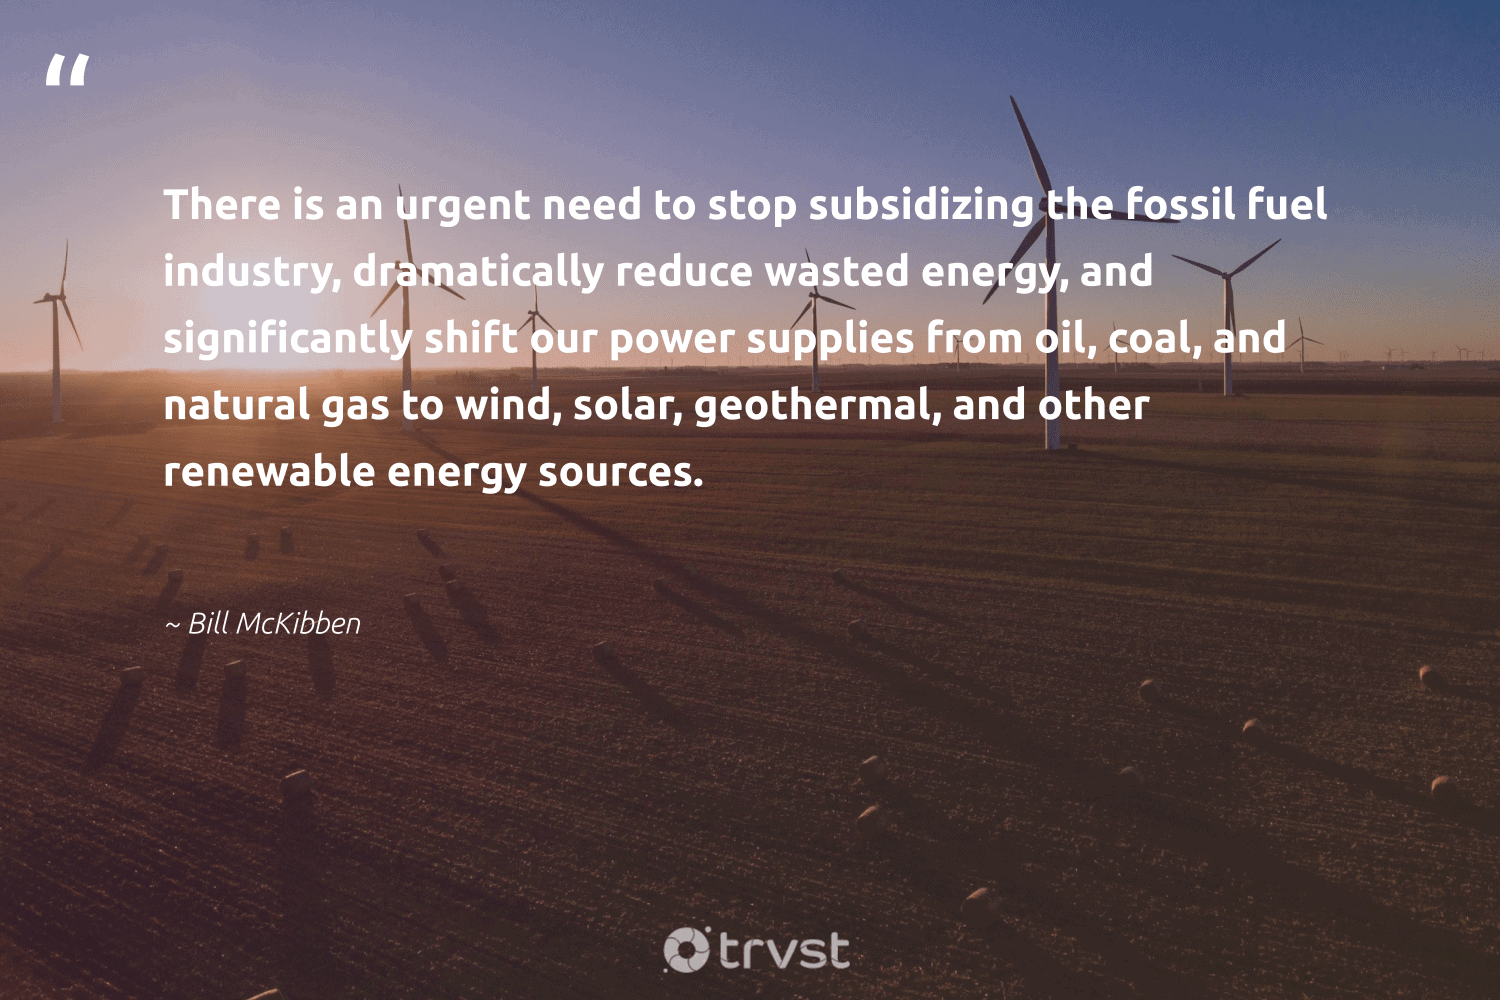 """""""There is an urgent need to stop subsidizing the fossil fuel industry, dramatically reduce wasted energy, and significantly shift our power supplies from oil, coal, and natural gas to wind, solar, geothermal, and other renewable energy sources.""""  - Bill McKibben #trvst #quotes #fossilfuels #reduce #energy #renewableenergy #renewable #solar #oil #gas #coal #natural"""